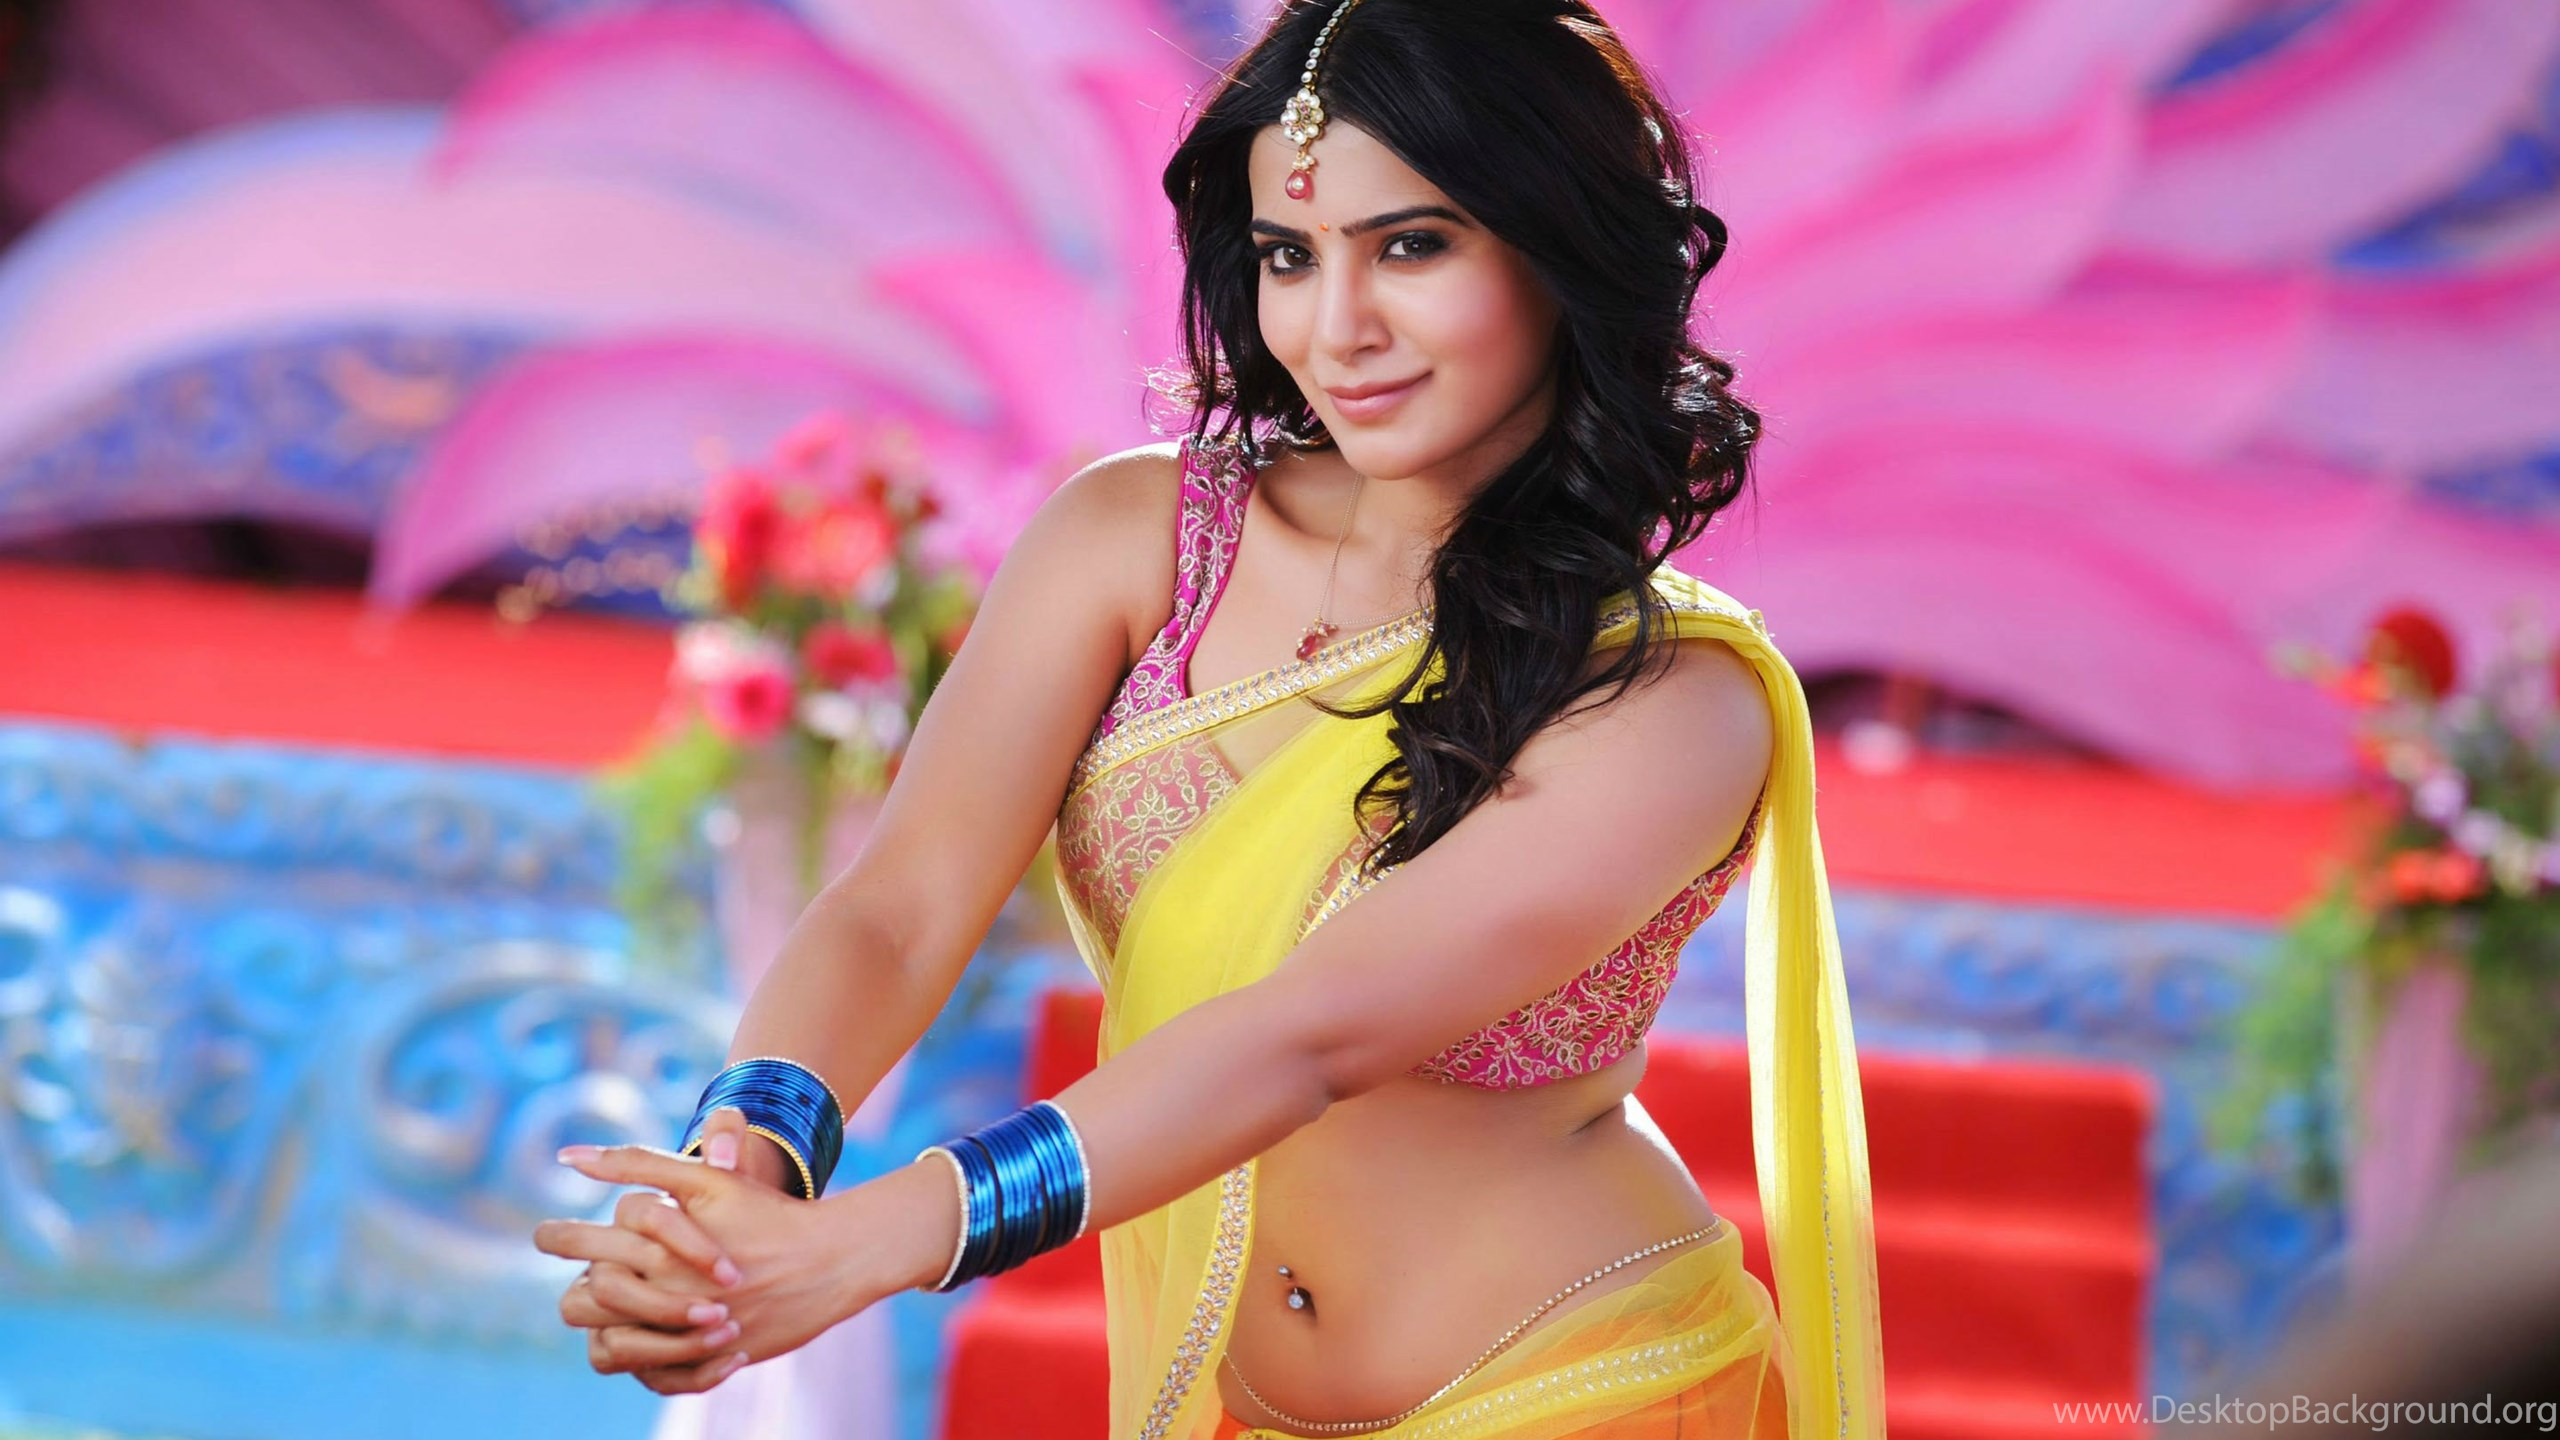 hot samantha ruth in saree hd wallpapers desktop background